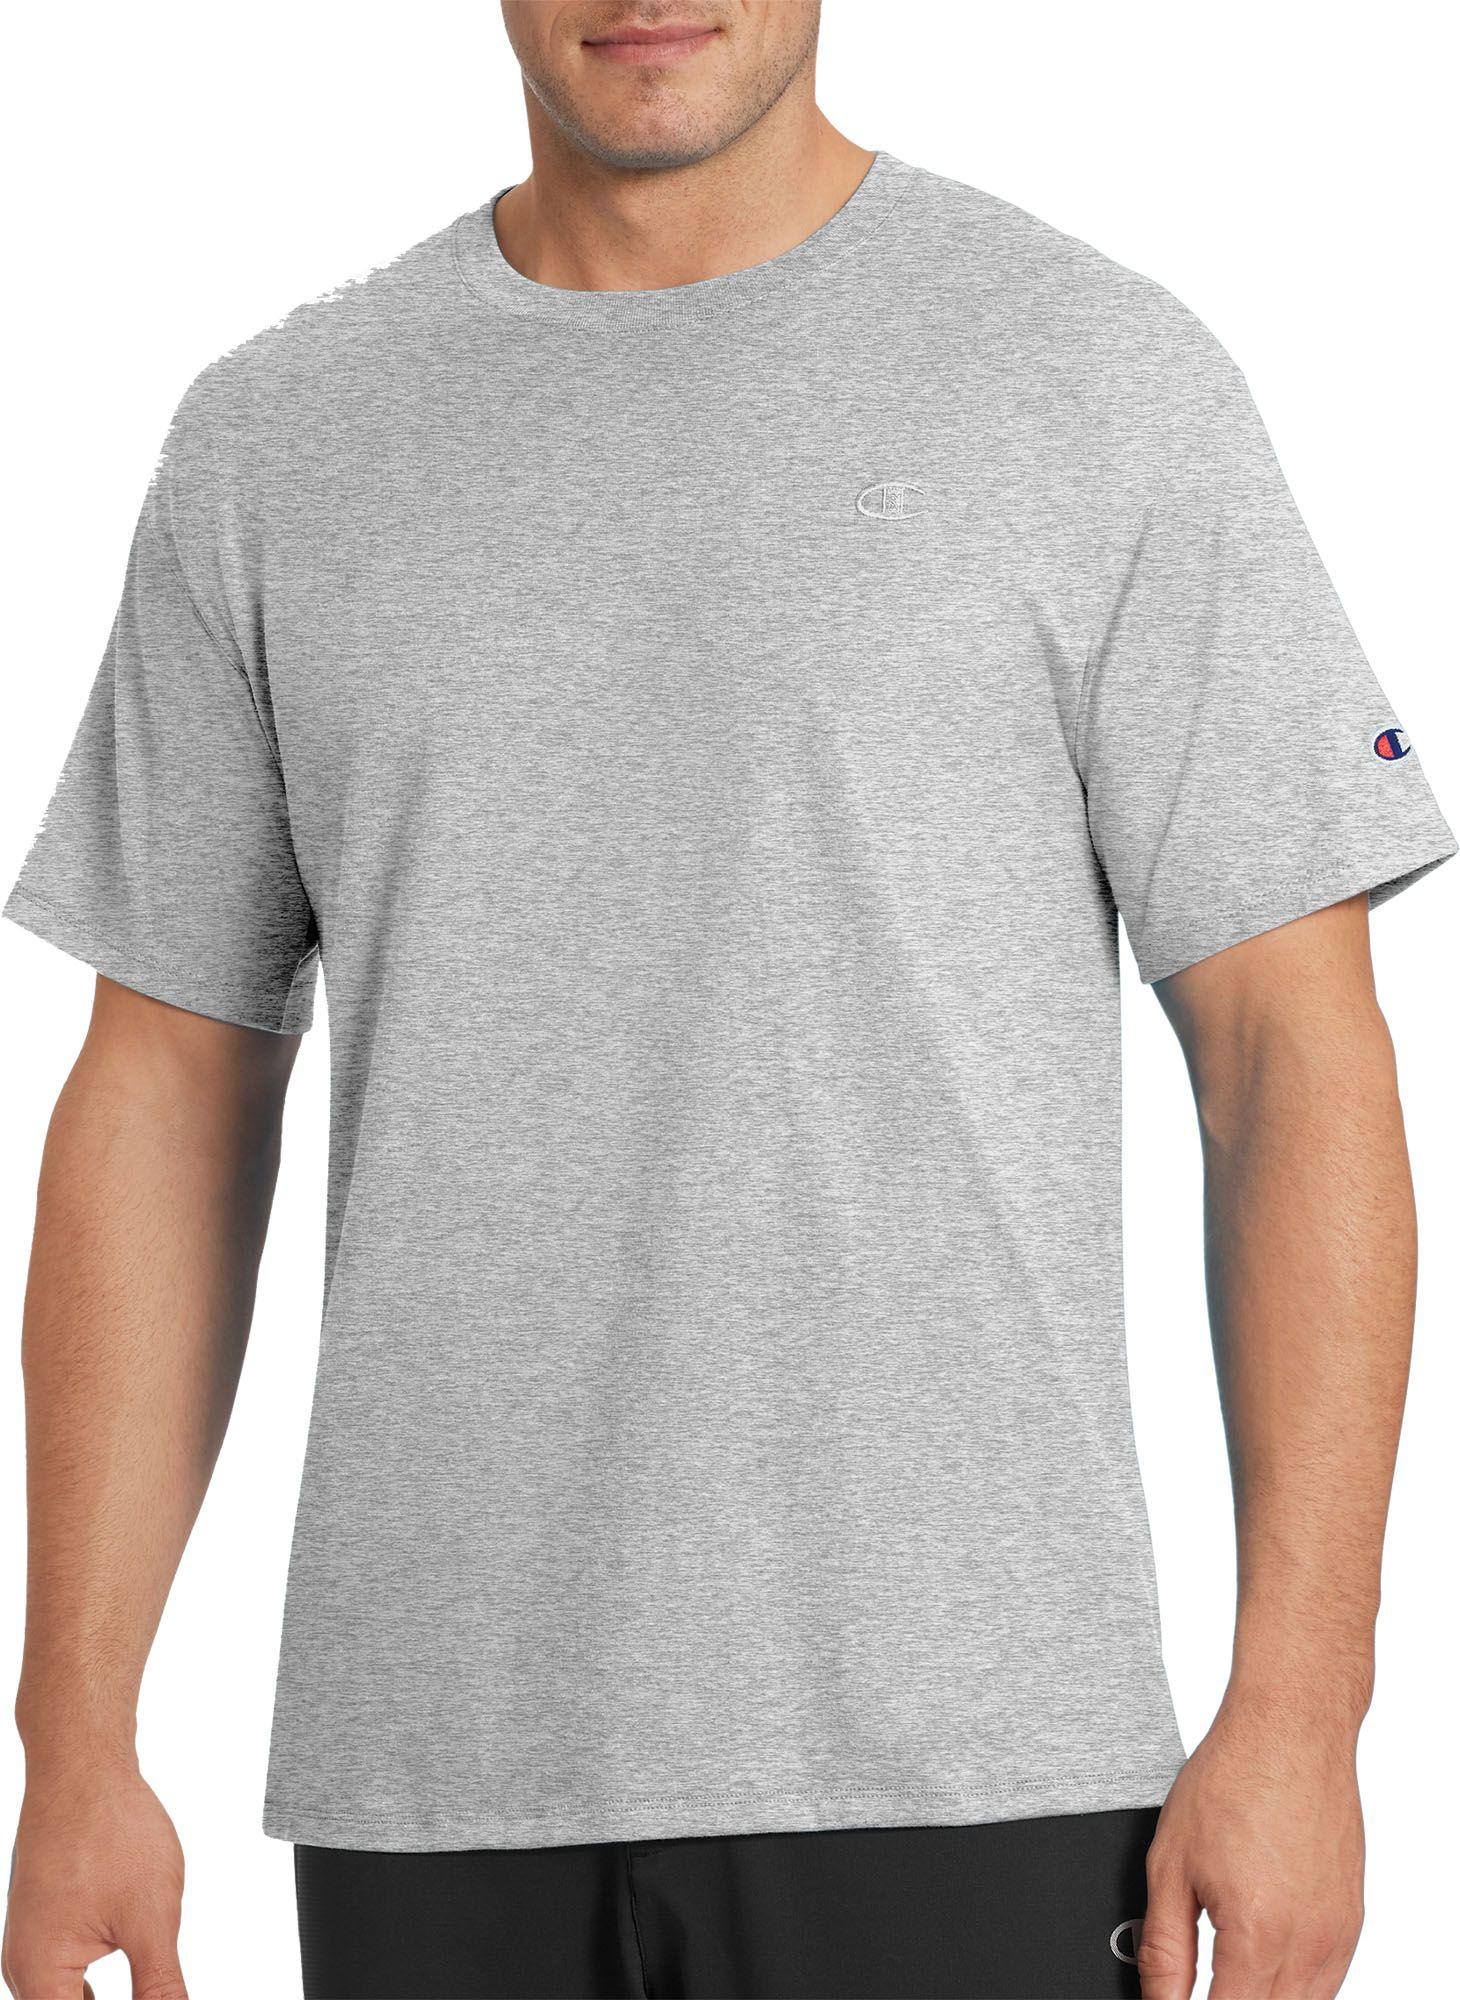 0d7bc319 Lyst - Champion Classic Jersey 2.0 T-shirt in Gray for Men - Save 7%